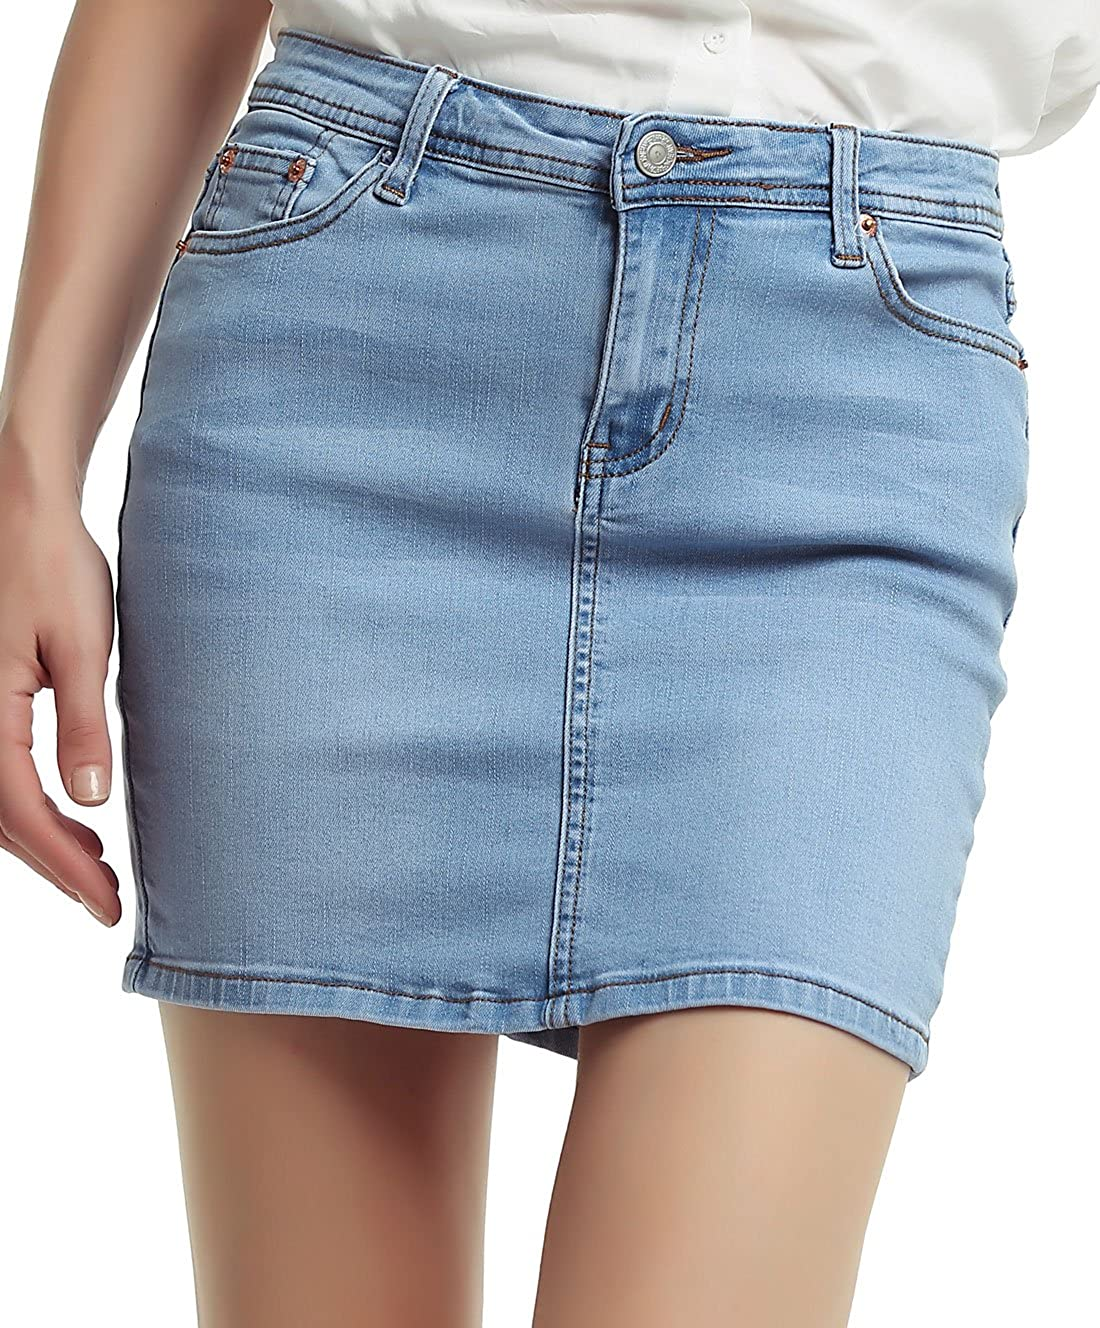 Chouyatou Women's Casual Short Denim Skirt